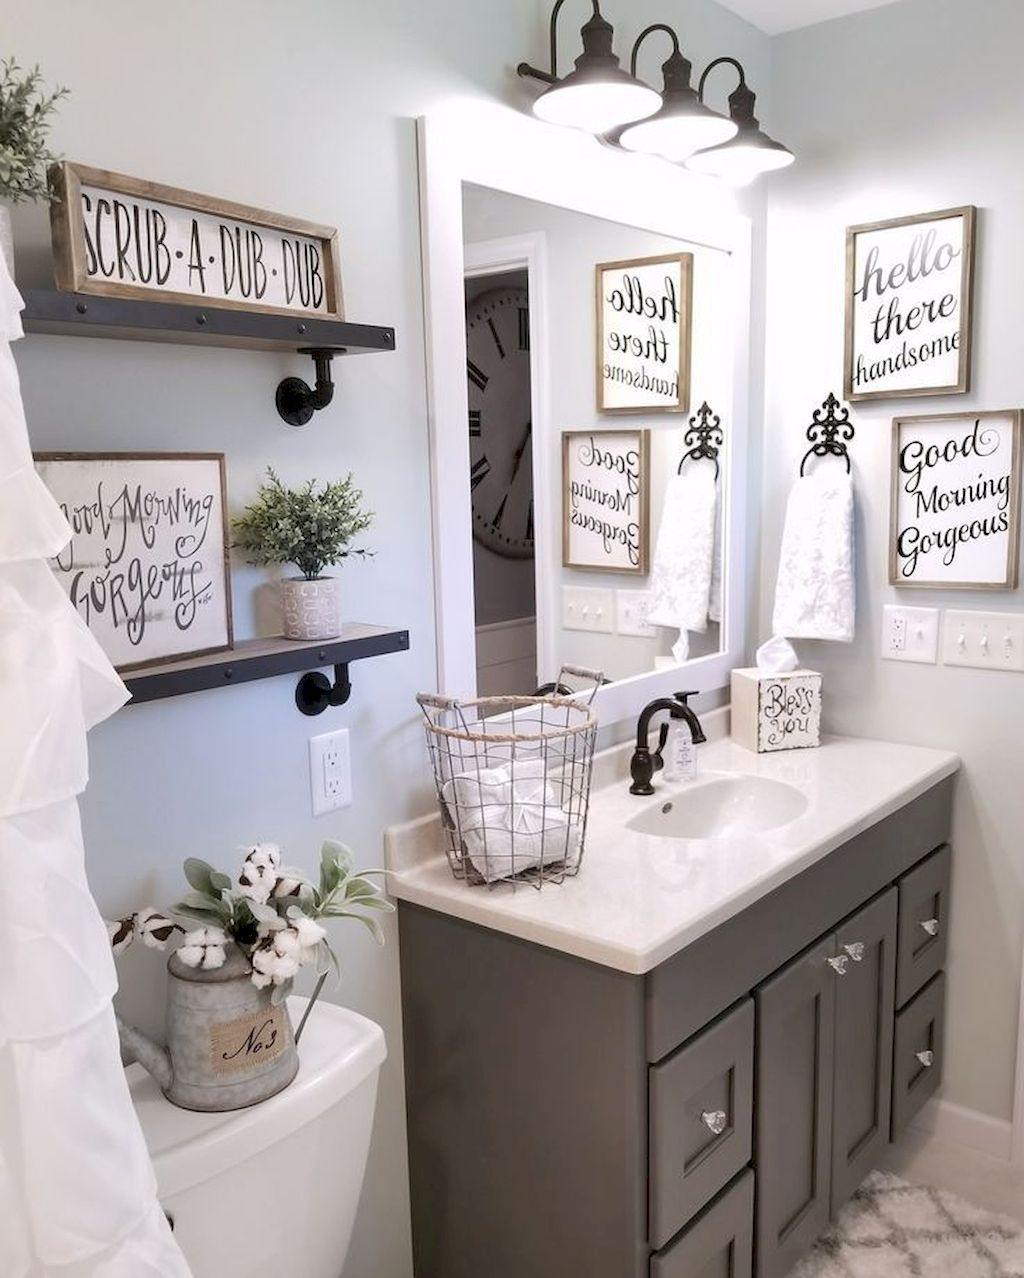 Tremendous Pin By Theresa Stanley On Renovation In 2019 Bathroom Home Interior And Landscaping Oversignezvosmurscom